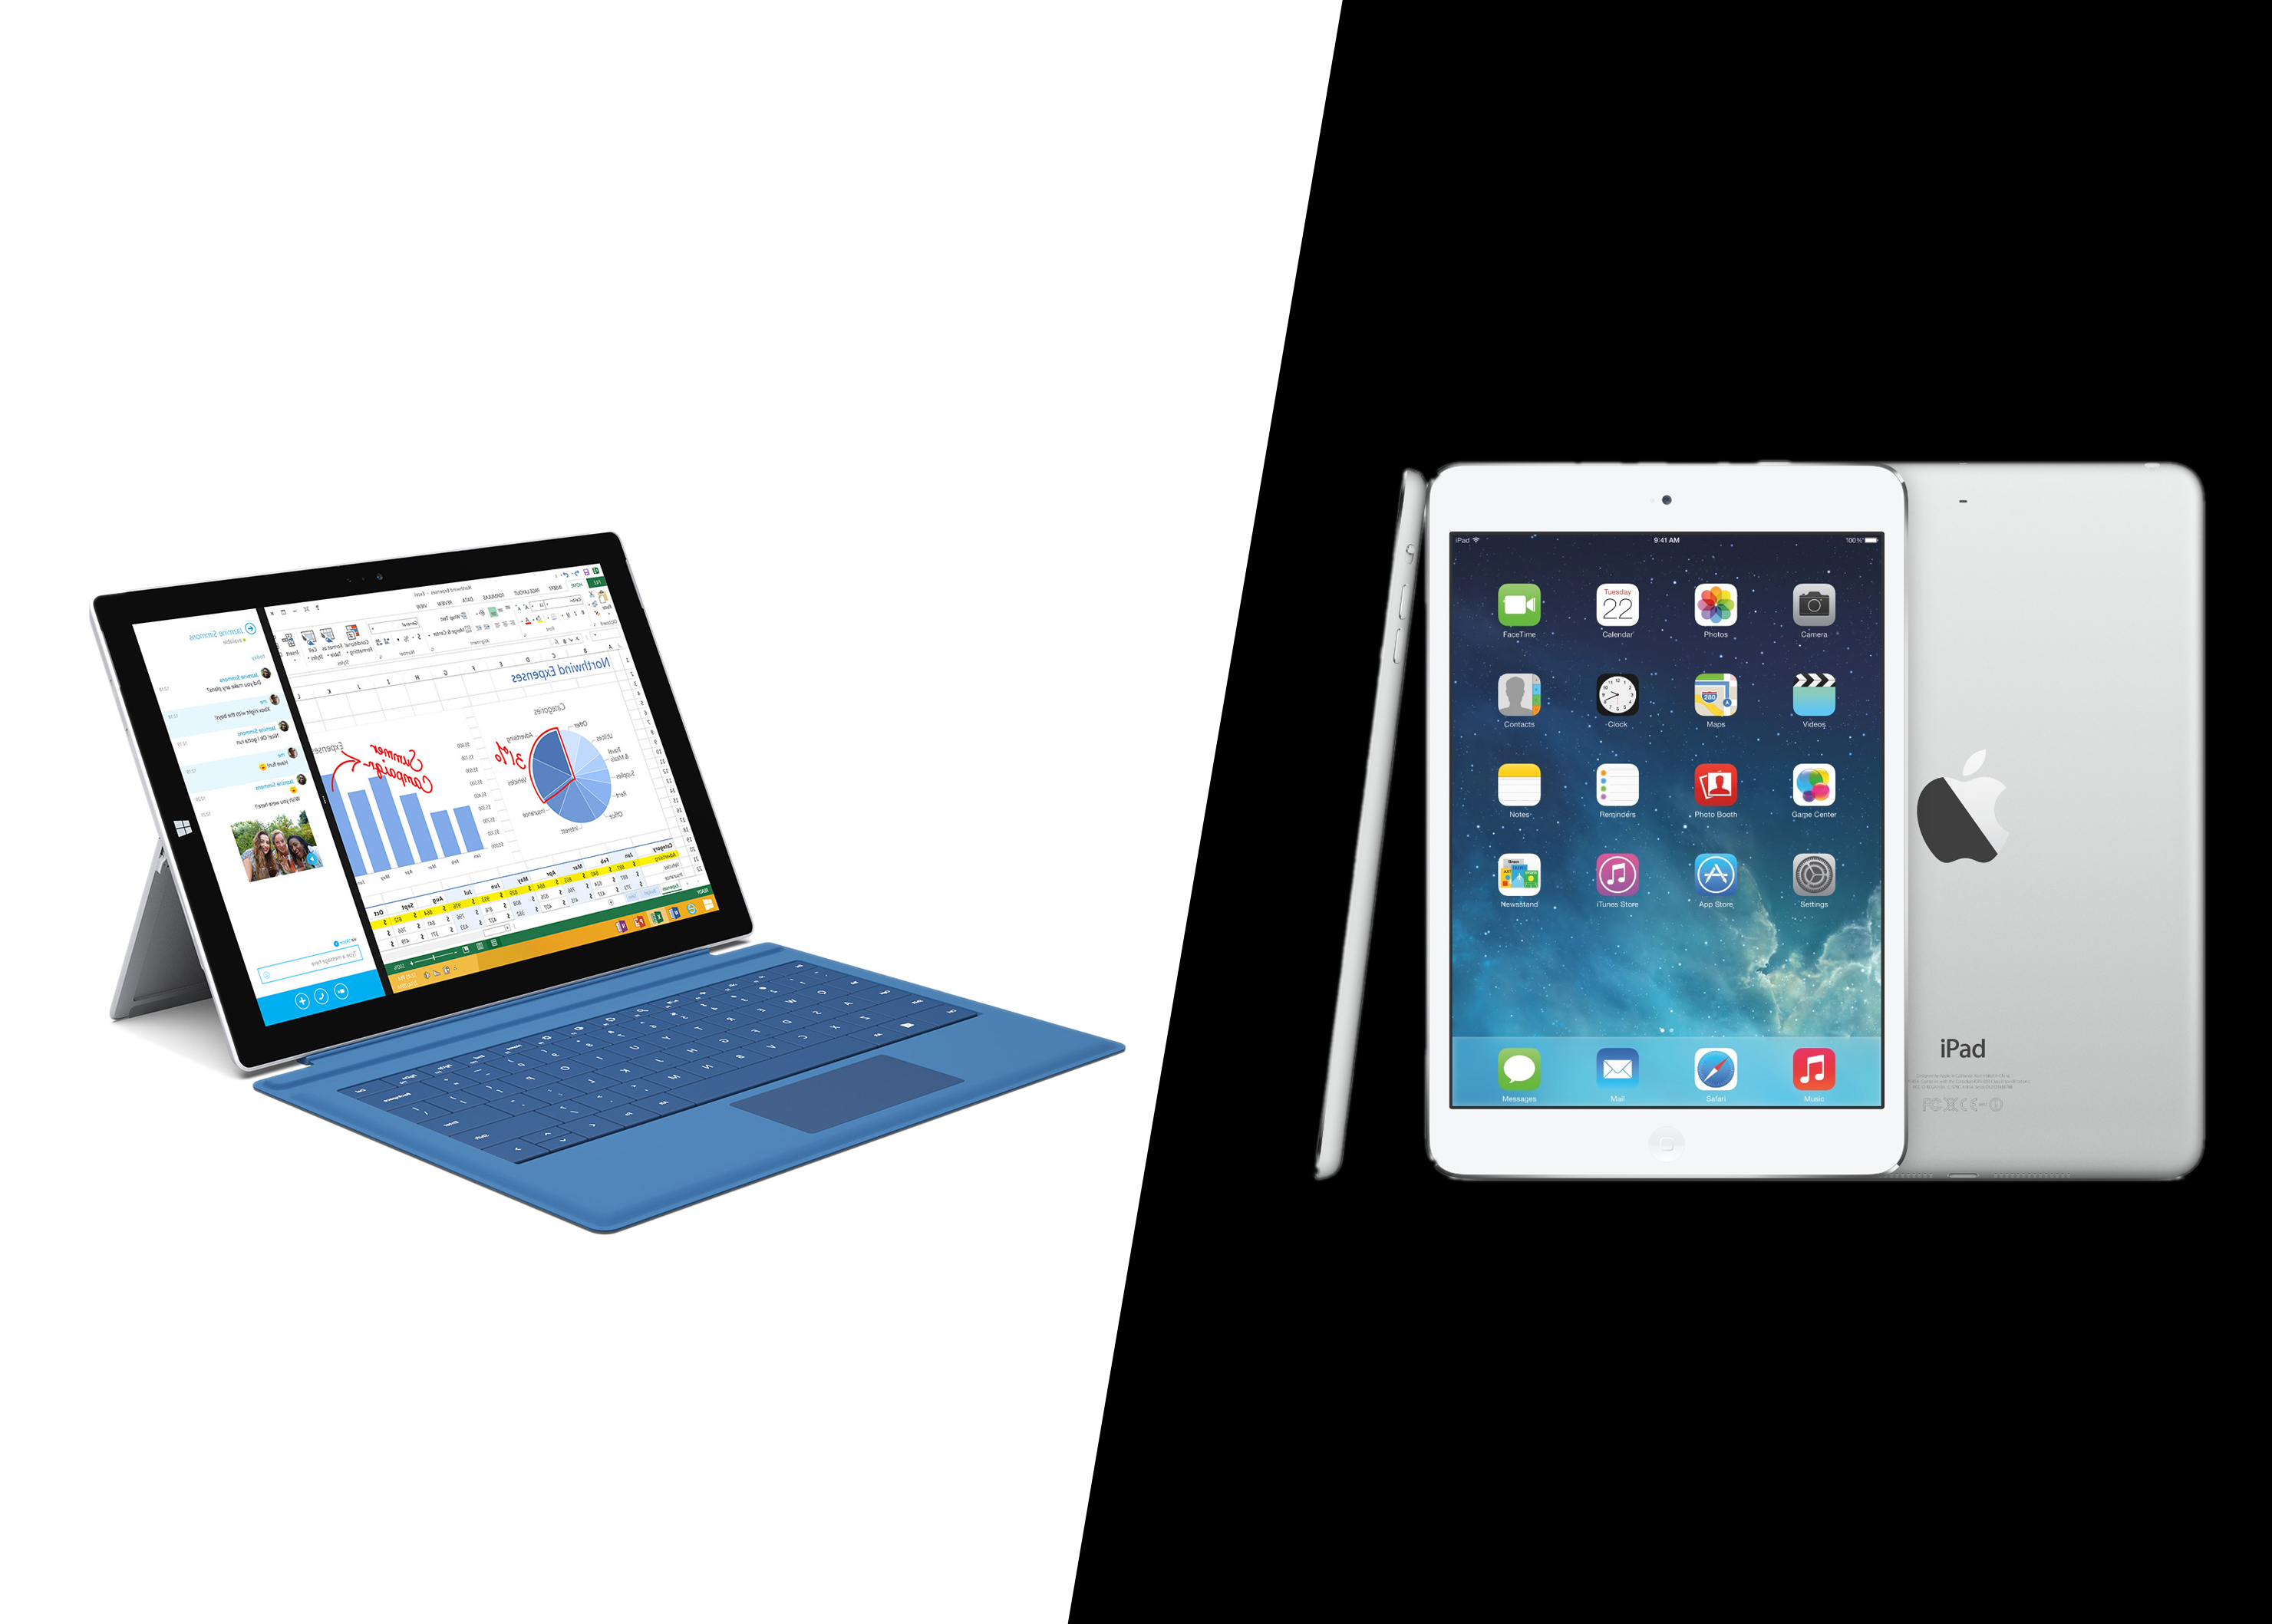 Surface Pro 3 vs. iPad Air: Which is Better for Business?